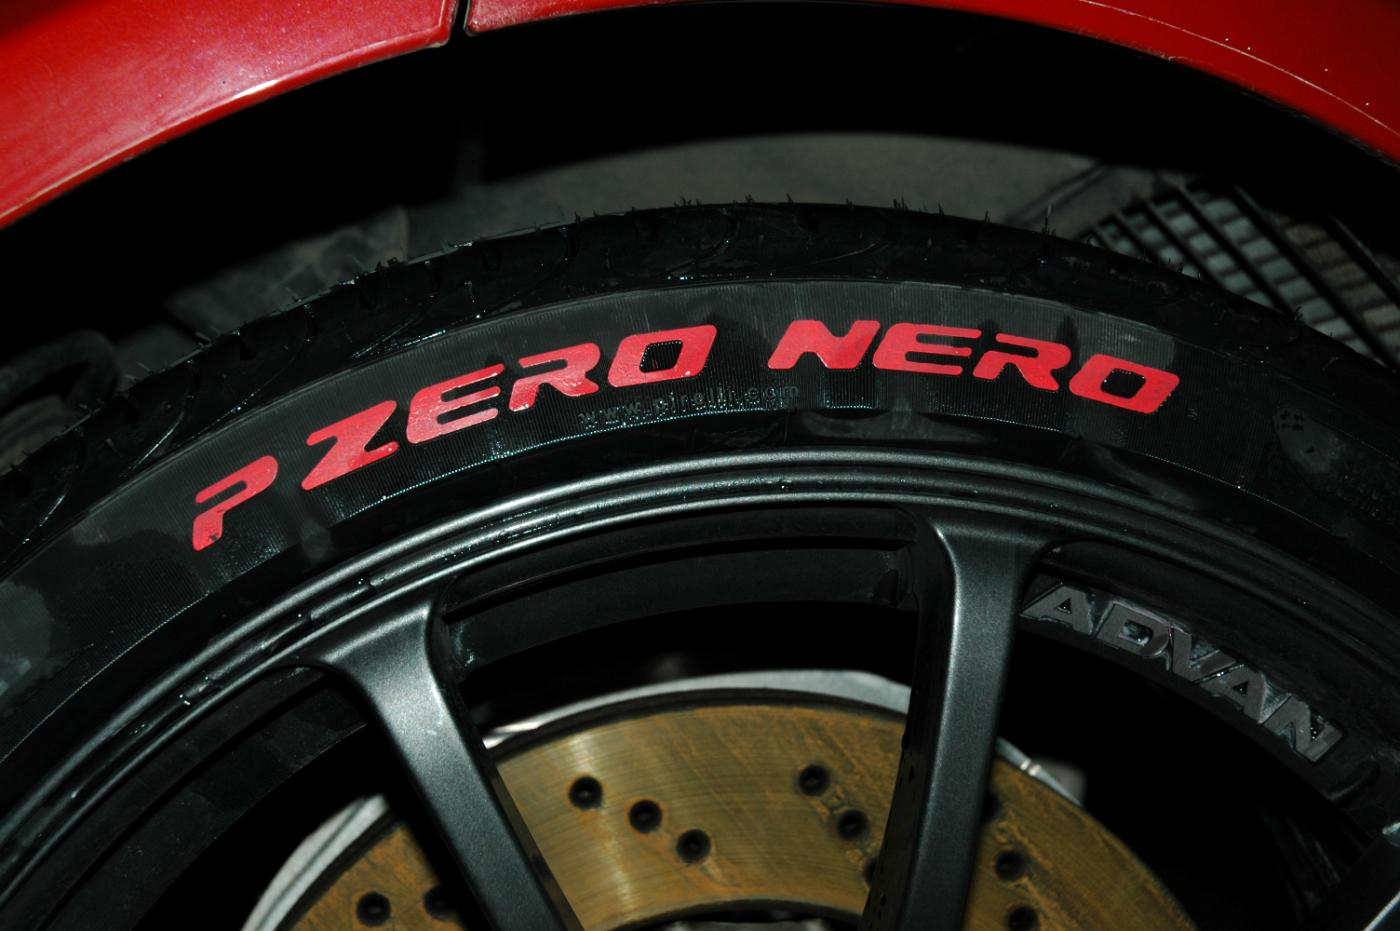 Painted Tire Sidewalls Just The Letters